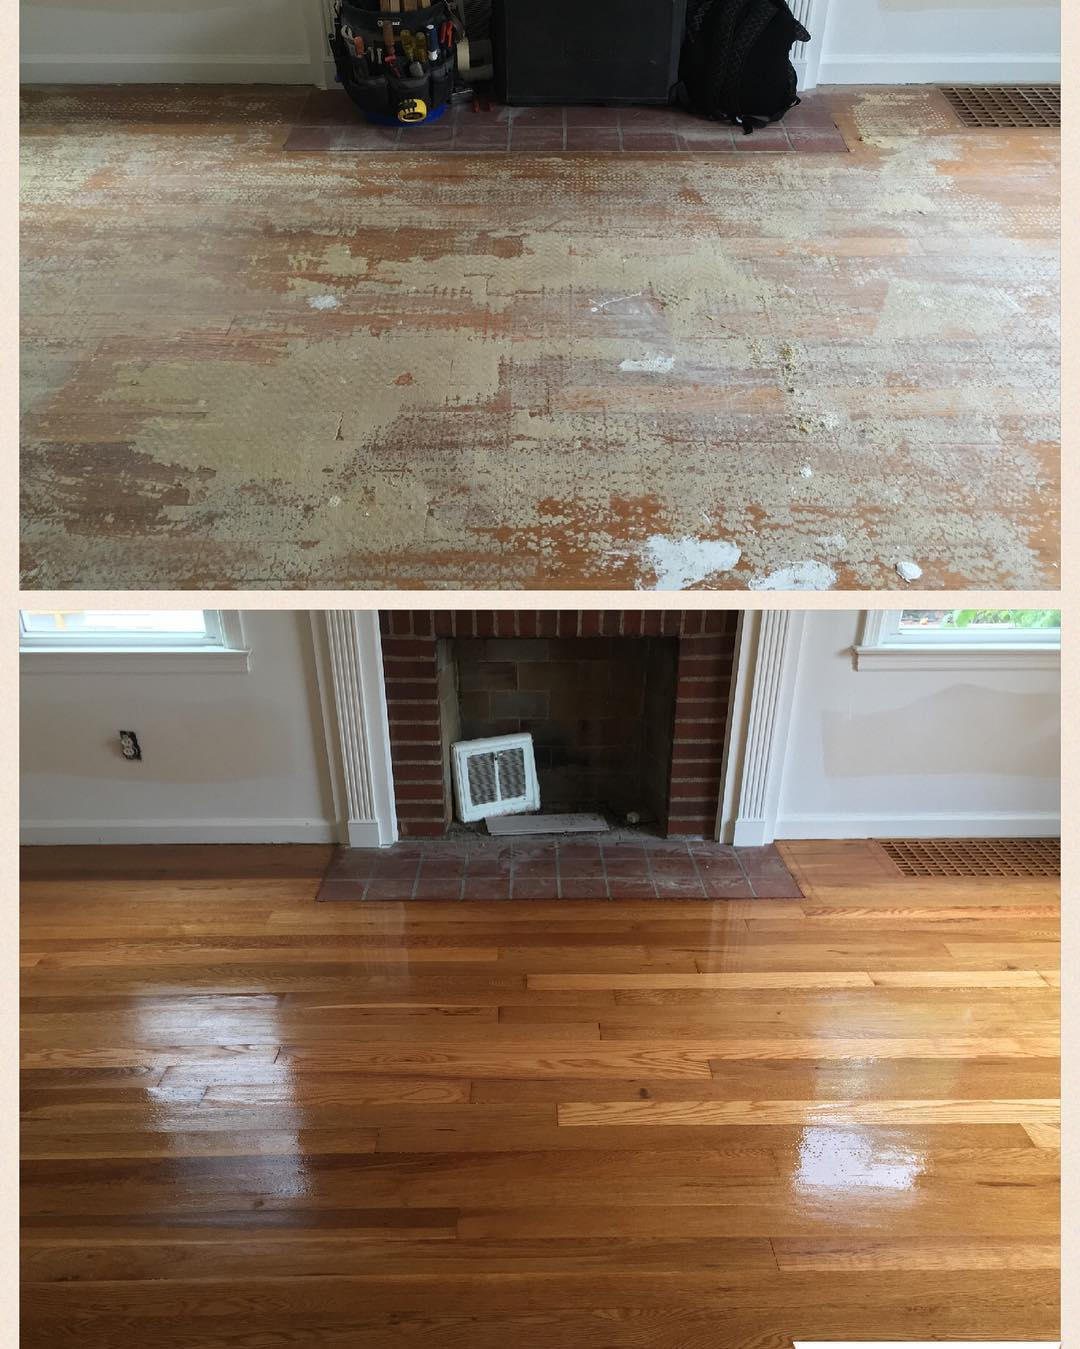 Here's a fun side by side transformation. Have a fun and safe weekend. #transformation #OldToGold #floorsander #flooring #hardwoodflooring #hardwoodfloor #woodflooring #woodfloors #grandrapids #metrogr #grmi #michigan #entrepreneur #smallbusiness #hgtv #interiordesign #remodeling #woodworking #woodworker #pinterest #floorguys #architecture #designer #customwork #bona #new #fresh